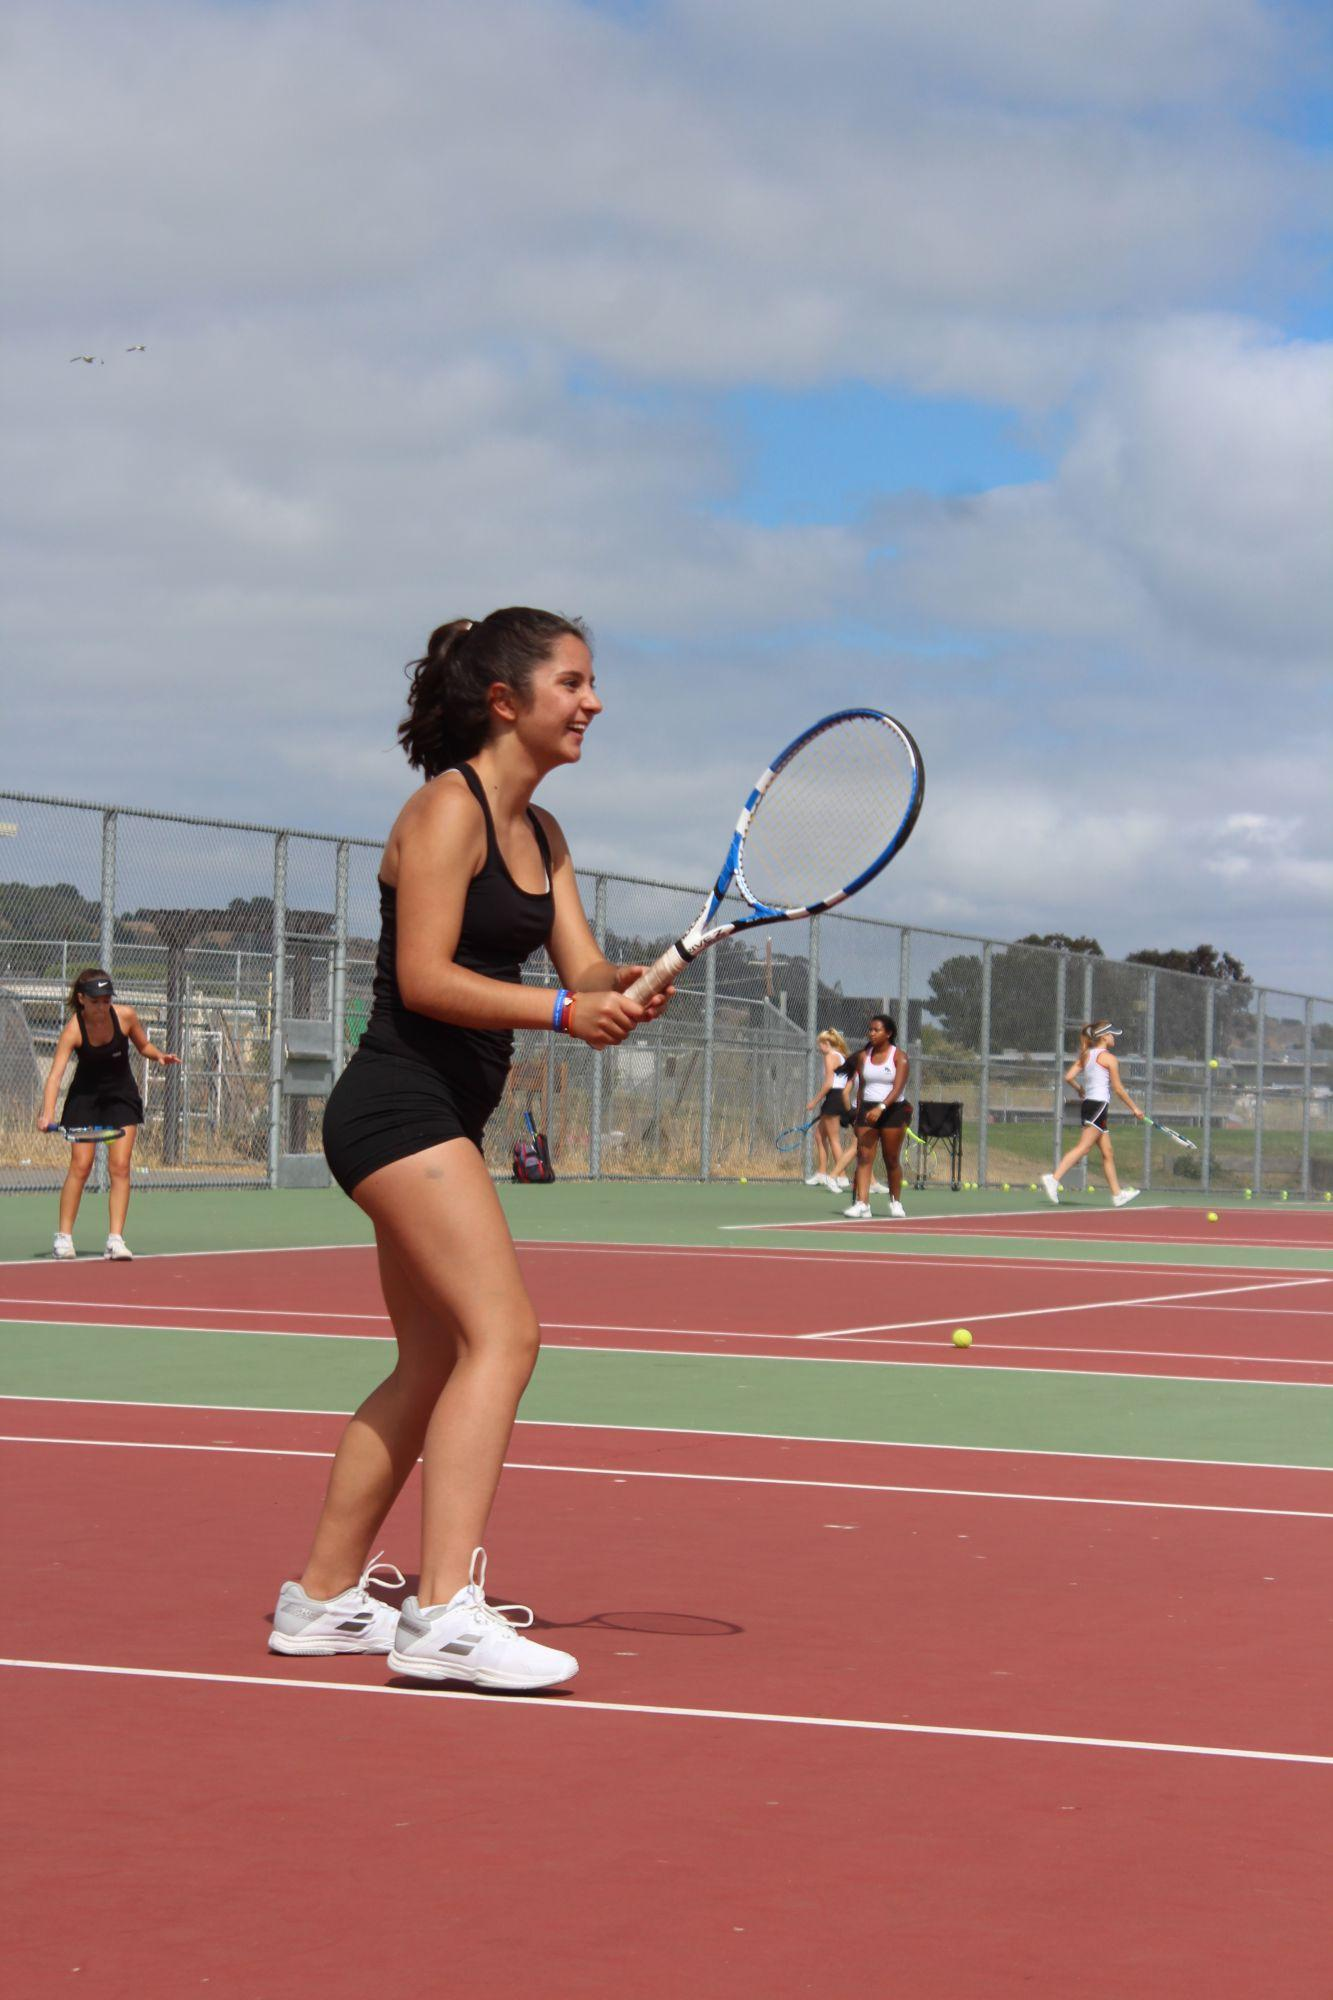 Pablos anticipates a serve from one of her teammates.